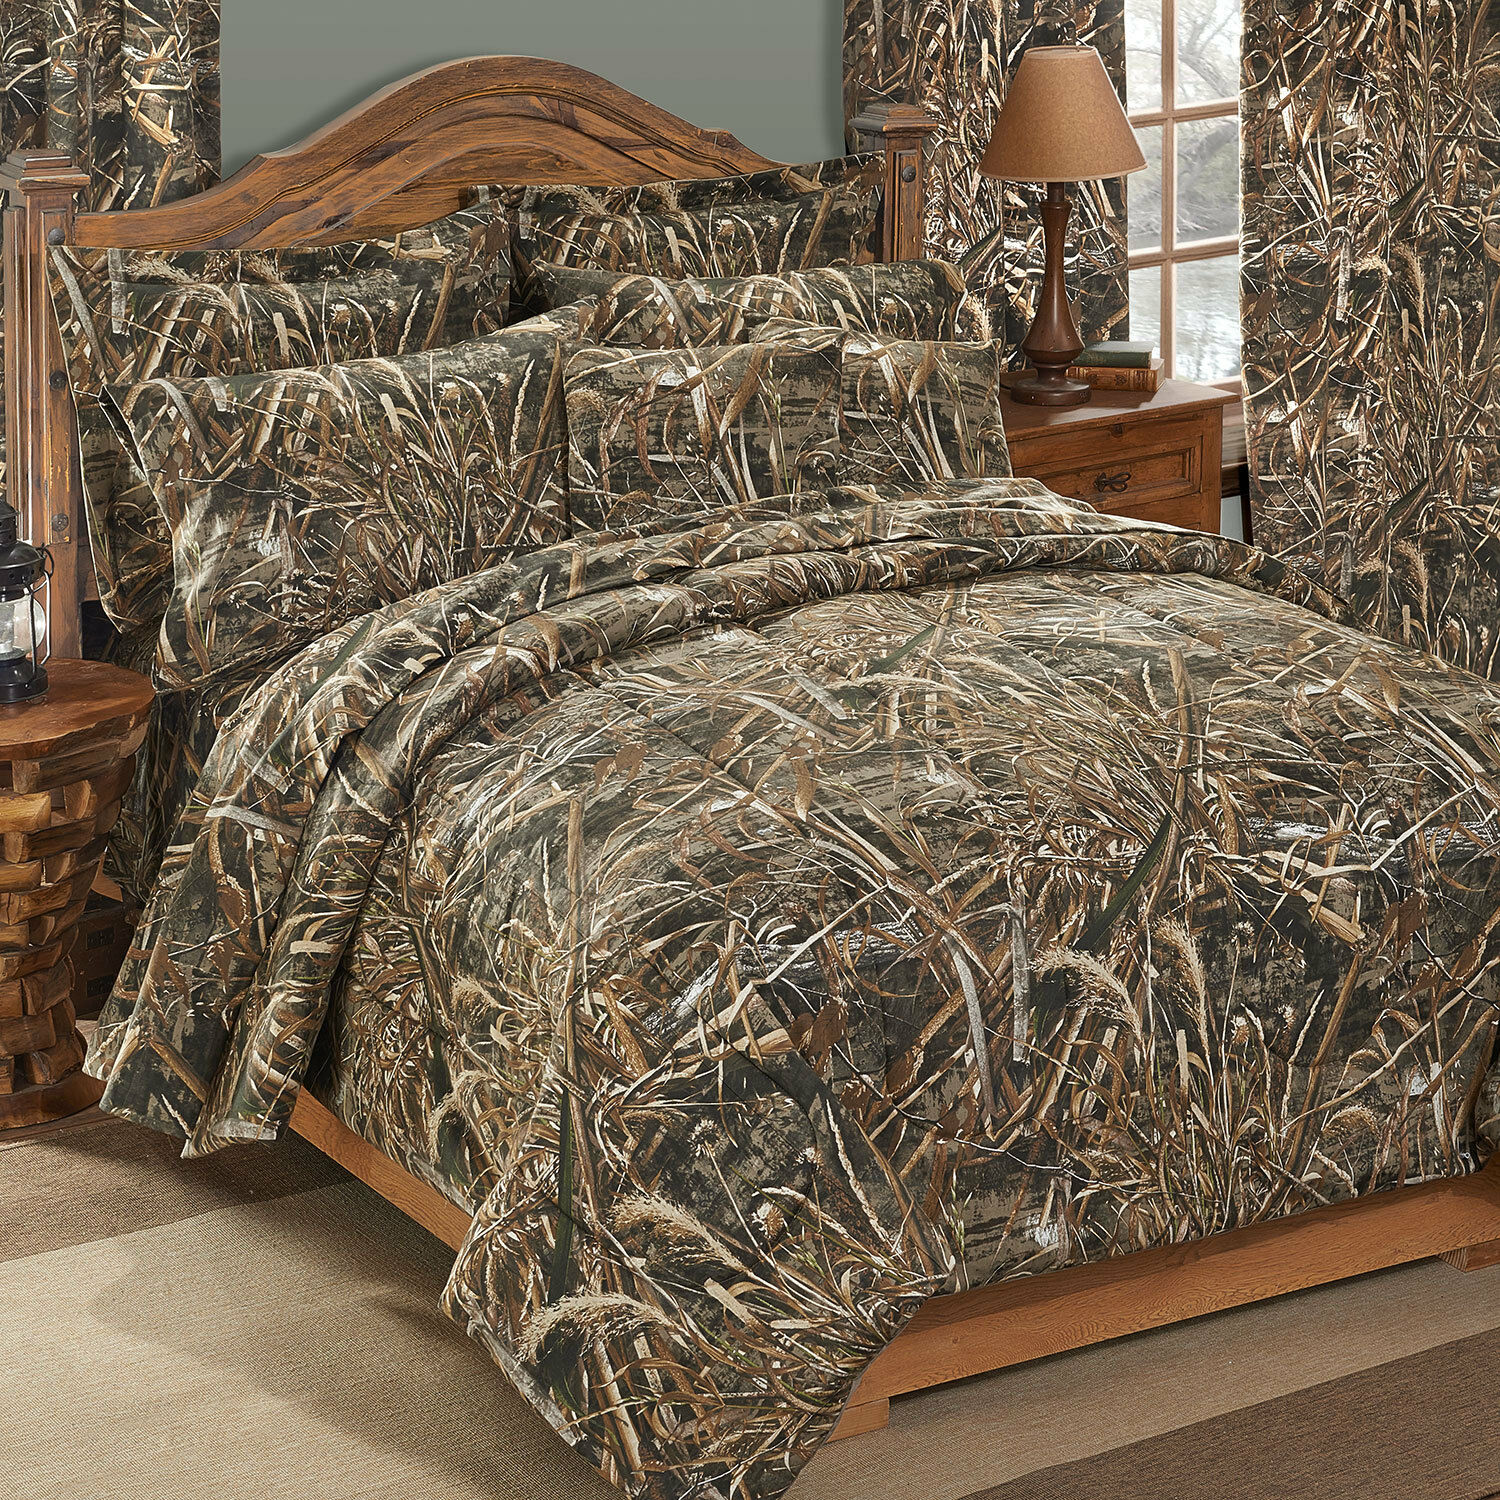 Realtree Max 5 Camo Comforter Set with FREE Valance and Shipping